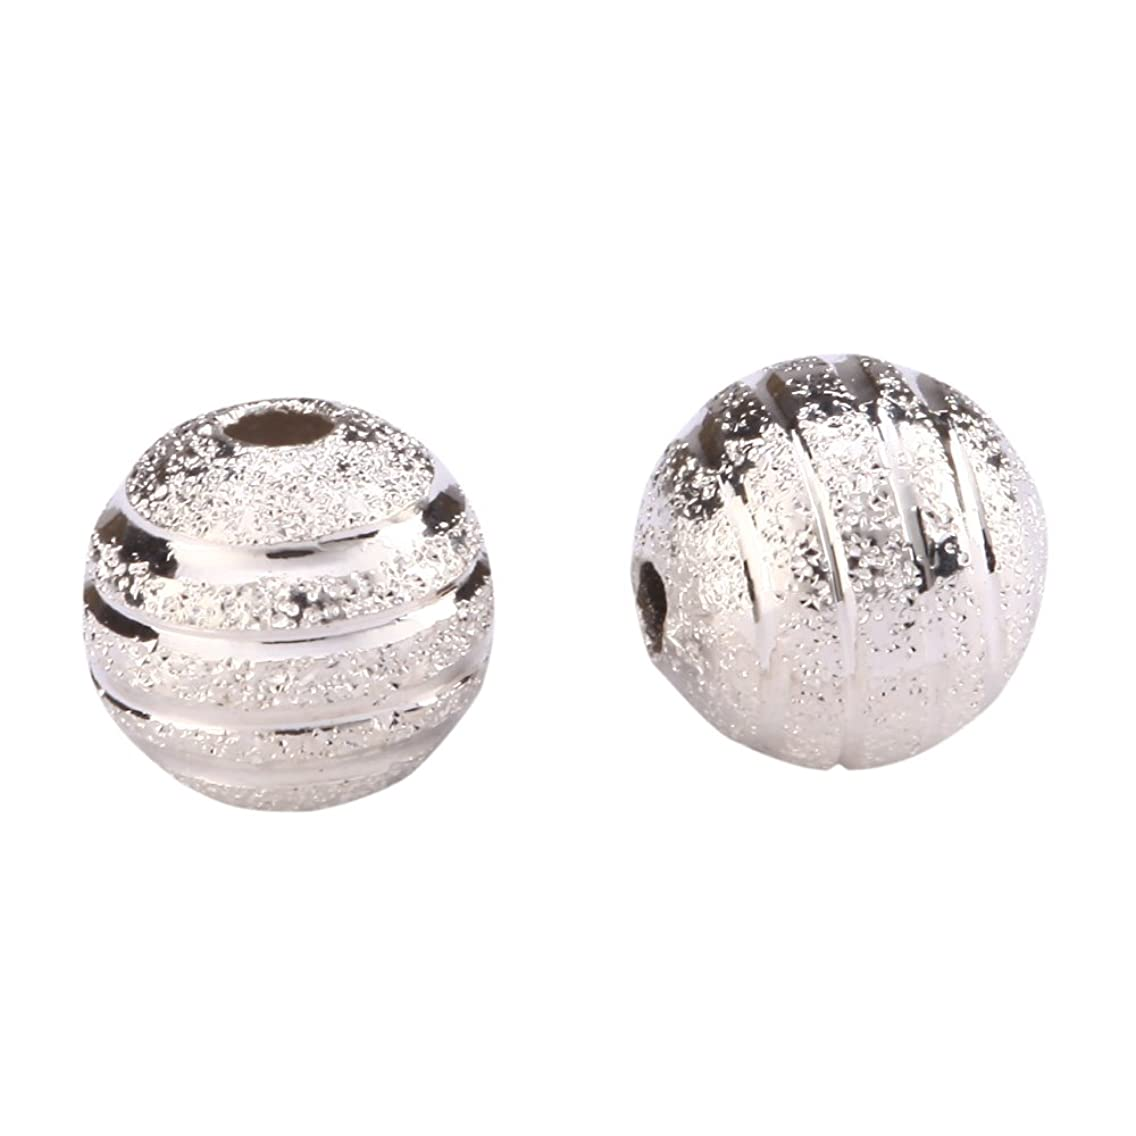 200pcs Top Quality 6mm Ribbon Pattern Spacer Beads Beautiful Round Metal Beads Sterling Silver Plated Brass CF10-6